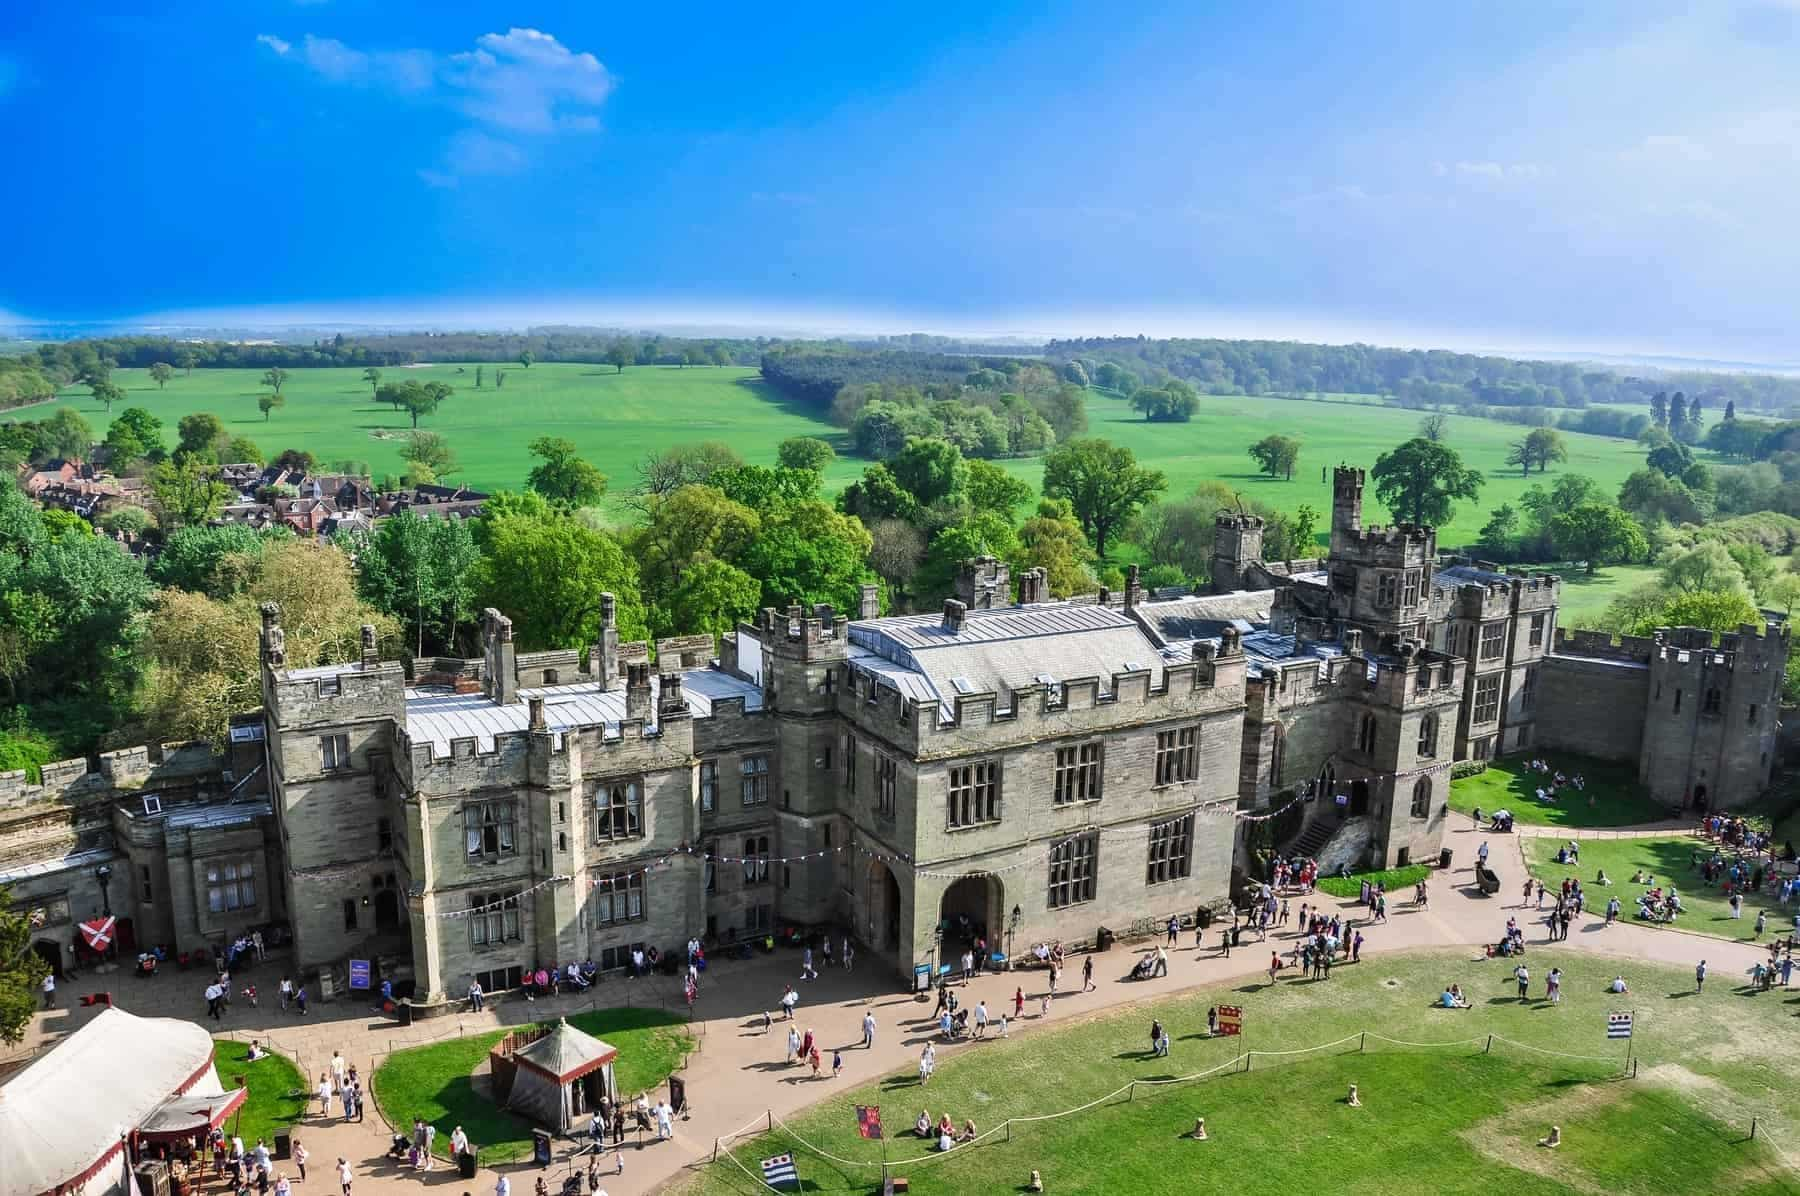 View of Warwick castle on August 5, 2014 in Warwick. Warwick Castle is a medieval castle developed from an original built by William the Conqueror in 1068.